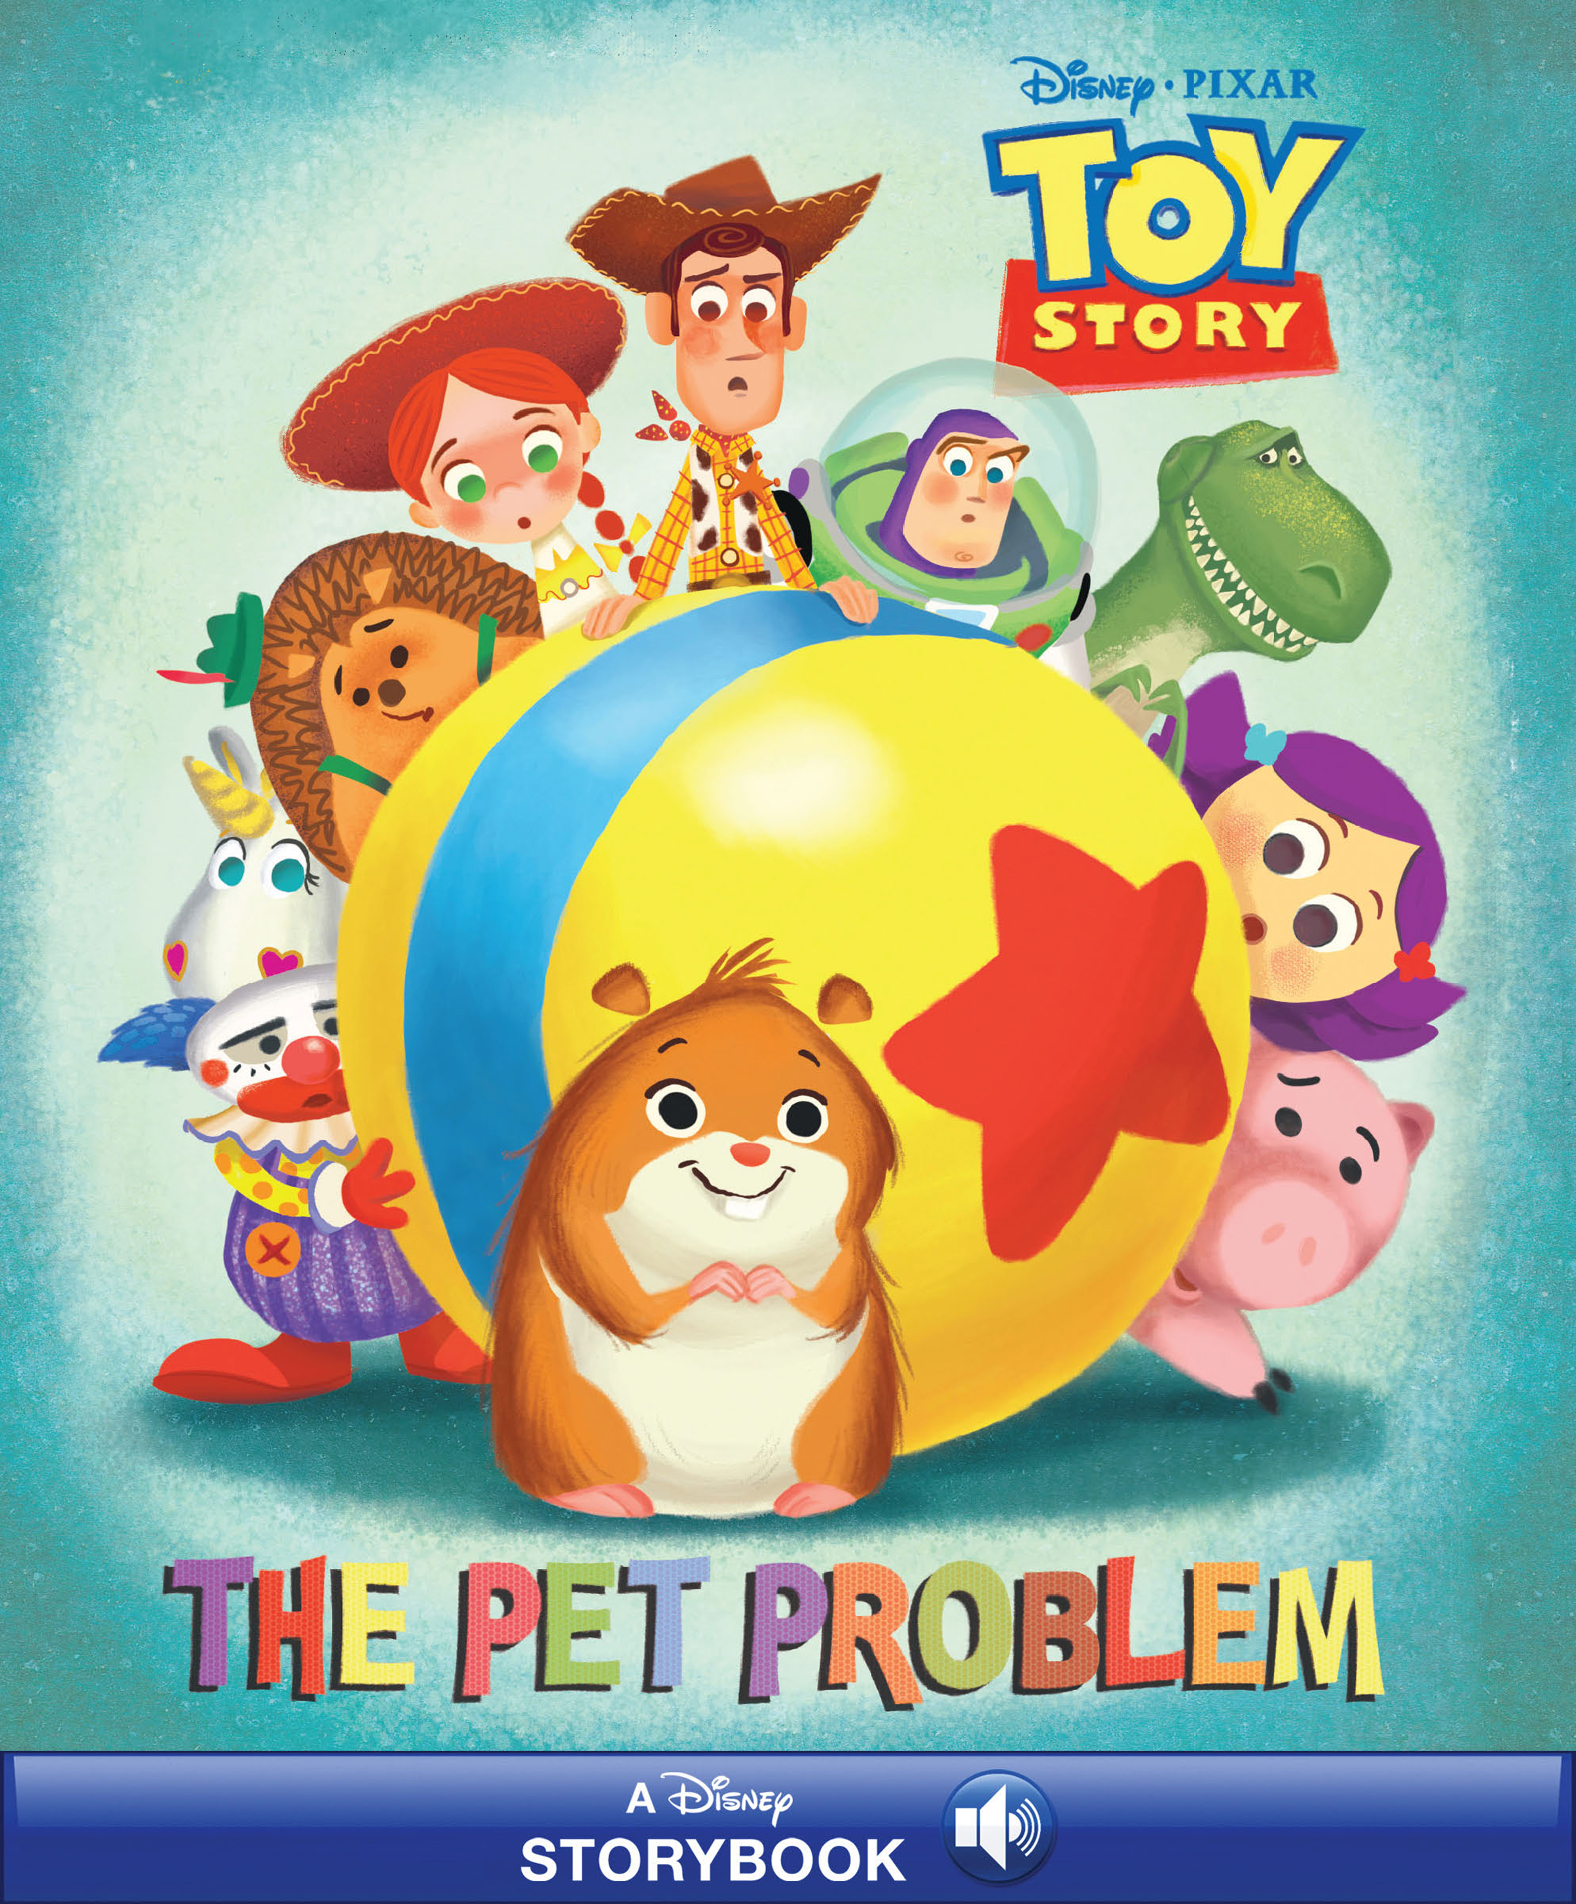 Disney Classic Stories: Toy Story: The Pet Problems Read-Along